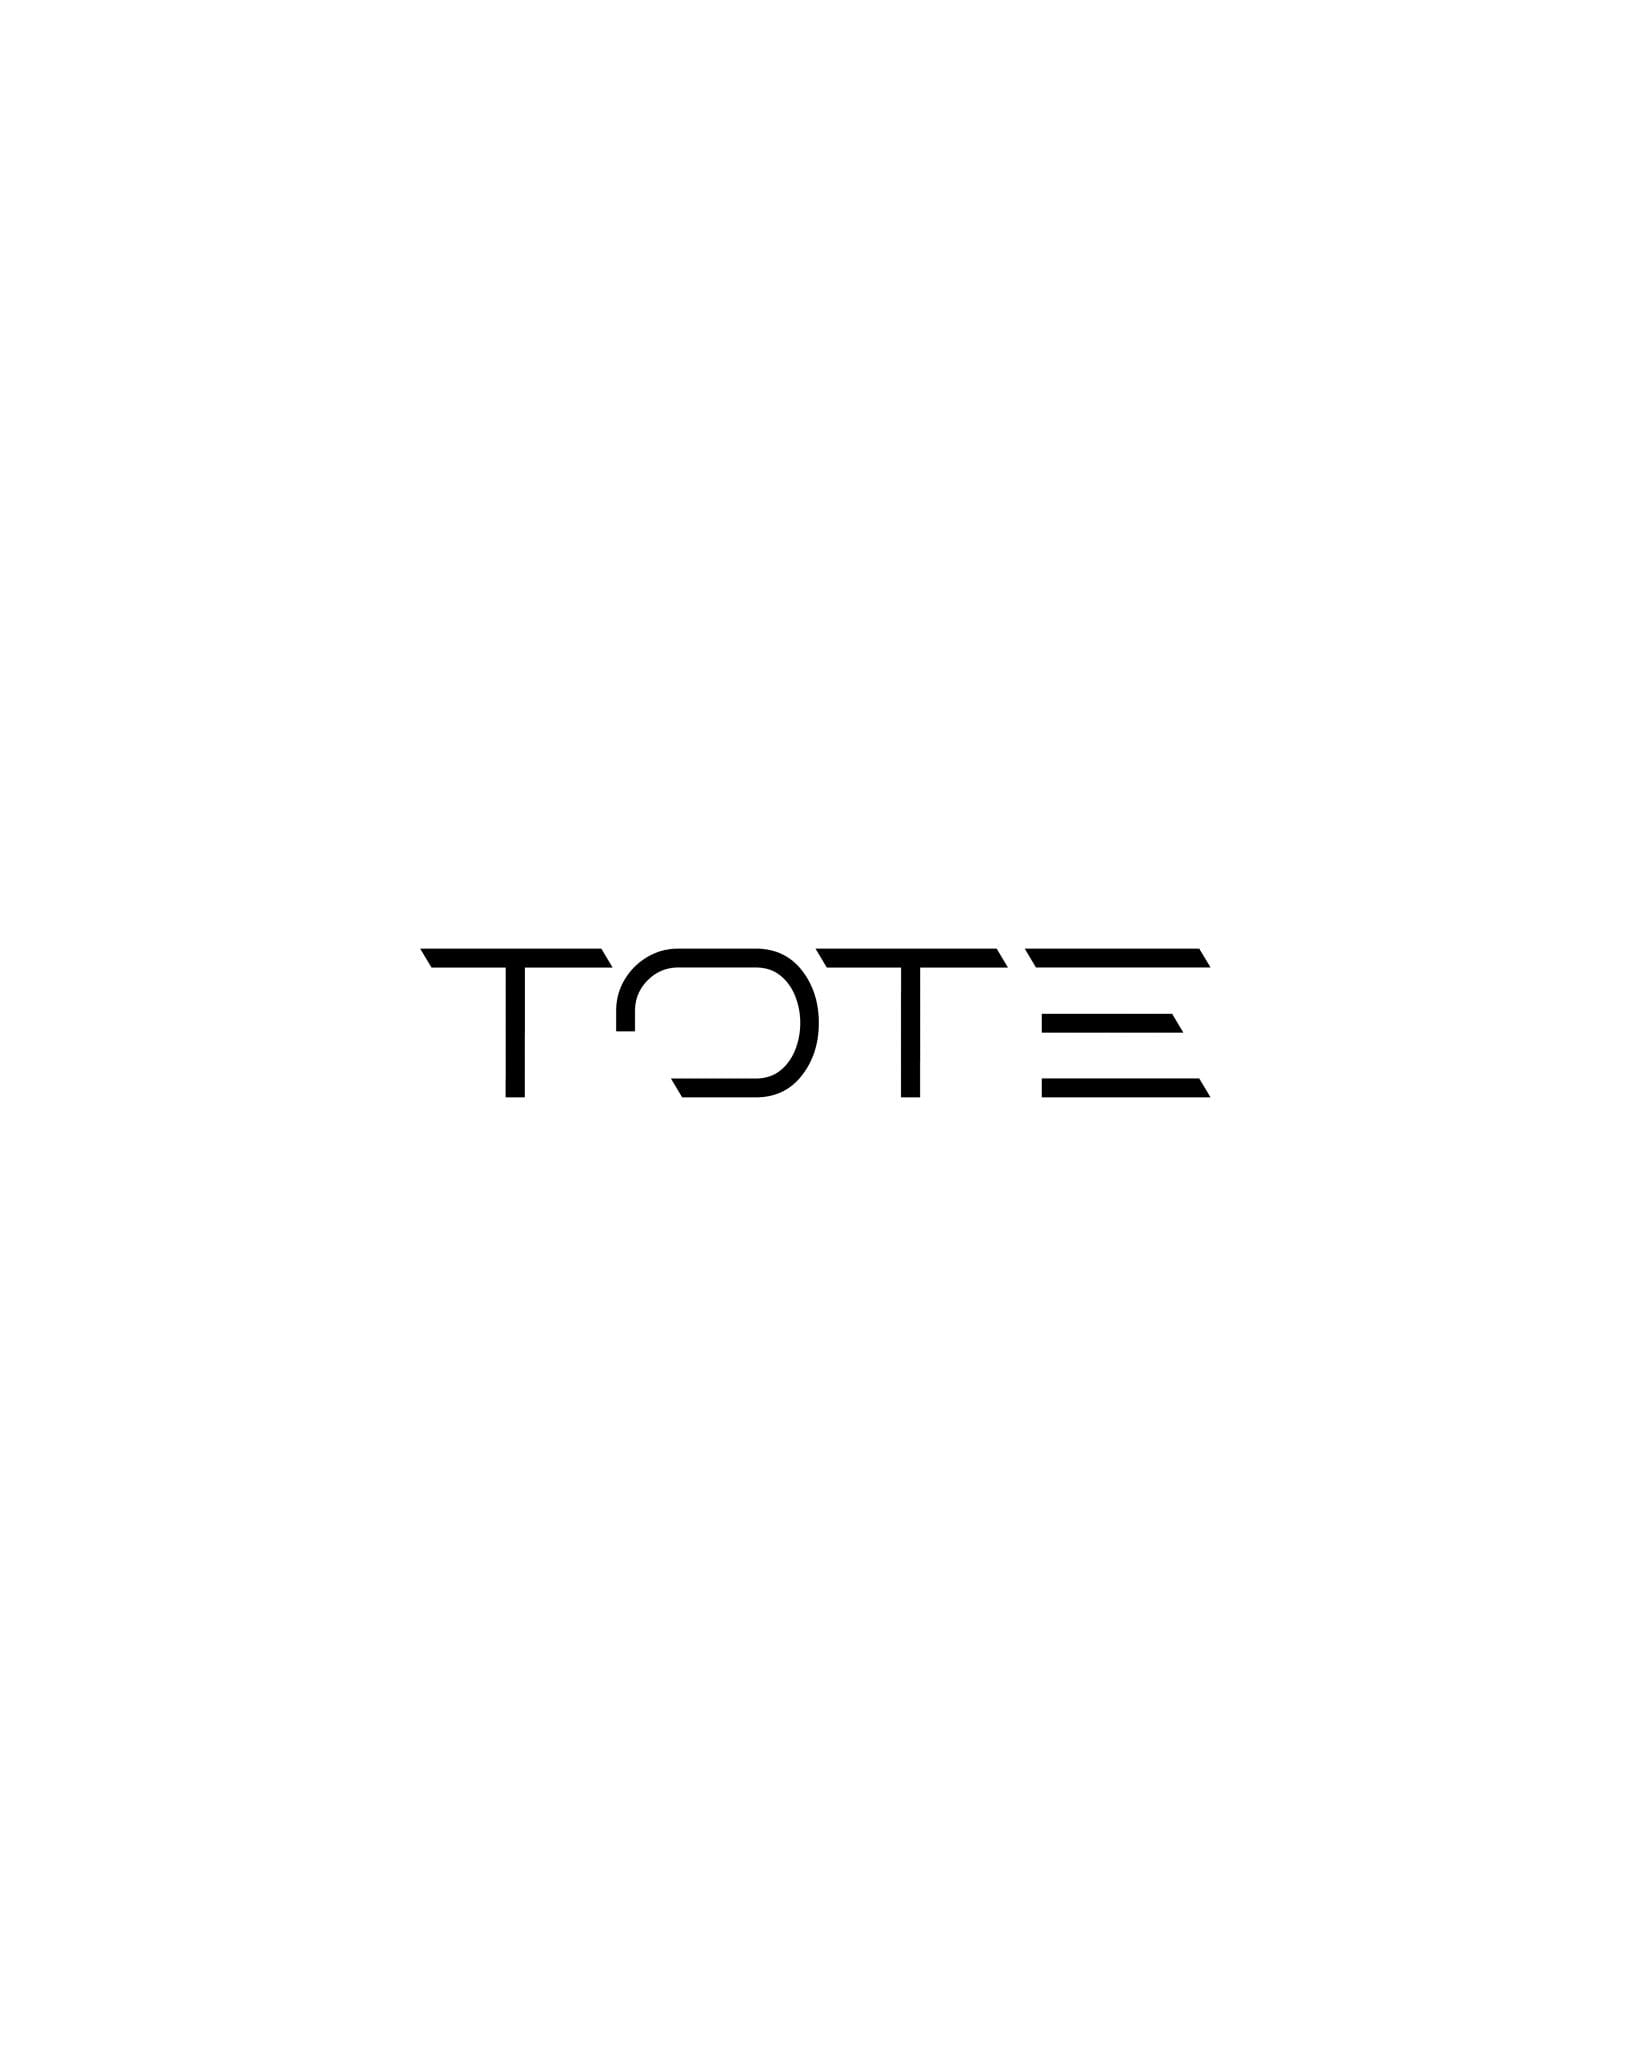 TOTE 10%OFF Image